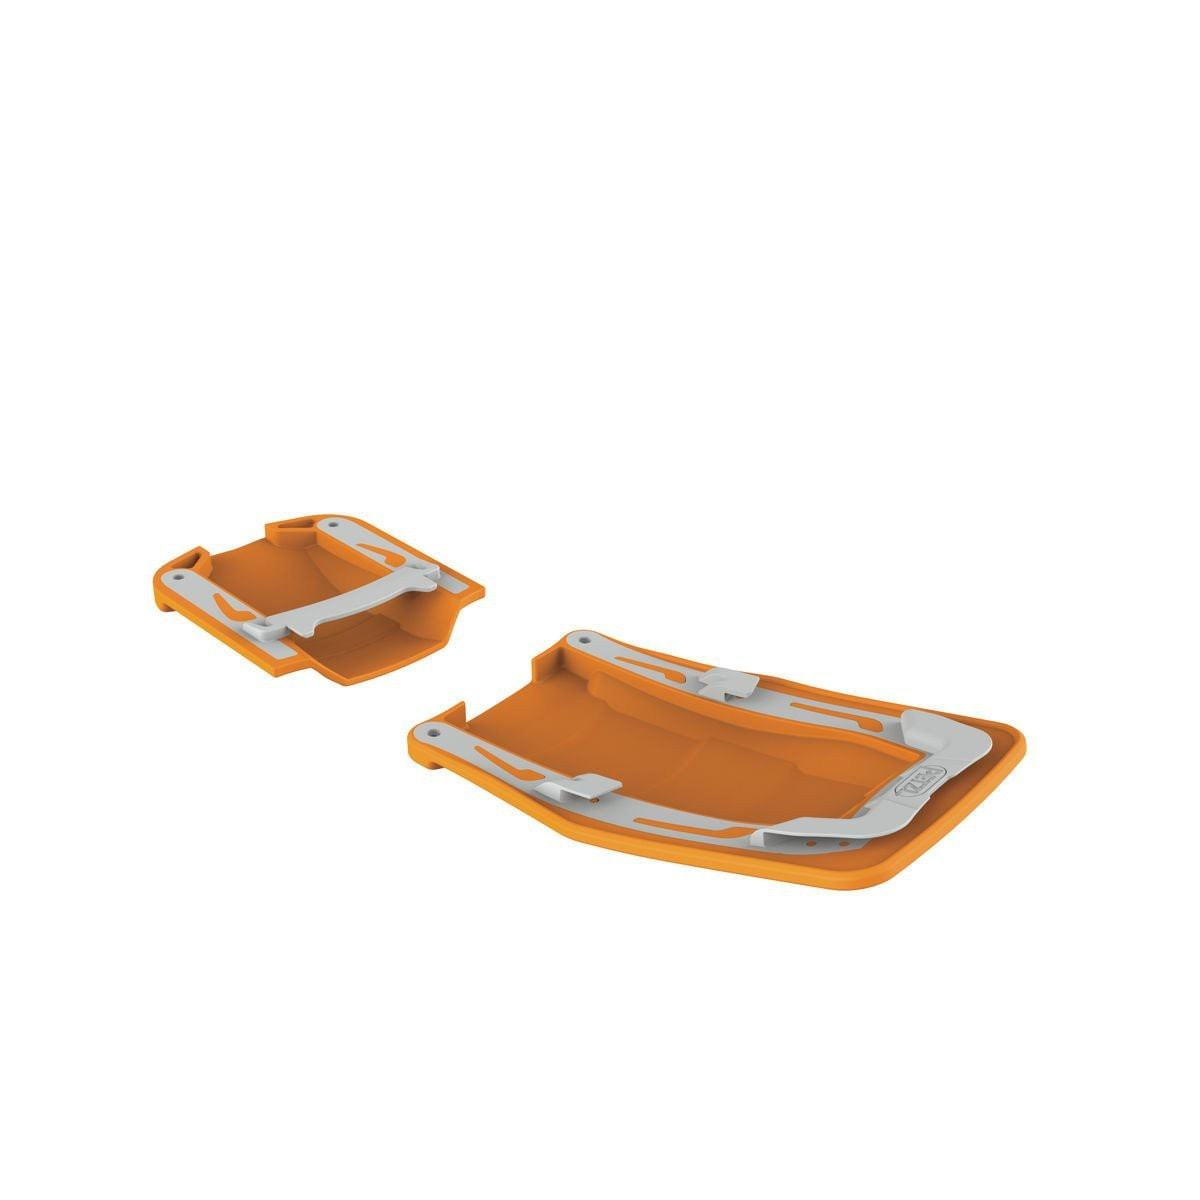 Petzl Vasak/Sarken Antisnow (AB Plates), shown as a pair, side by side in orange colour